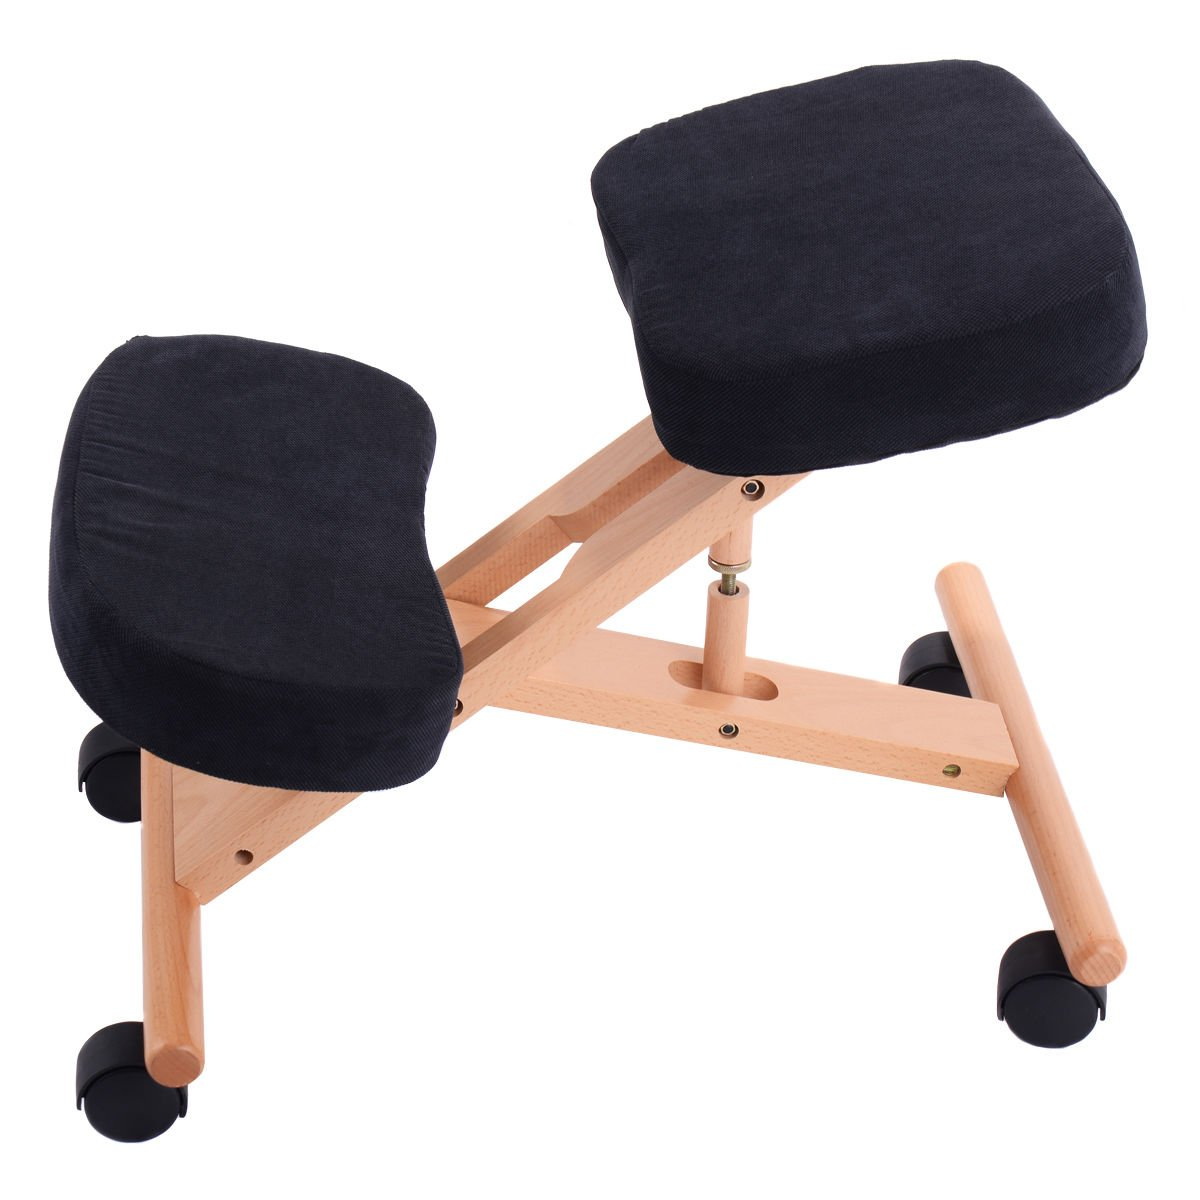 Ergonomic Kneeling Chair Wooden Adjustable Mobile Padded Seat and Knee Rest New by Sanny